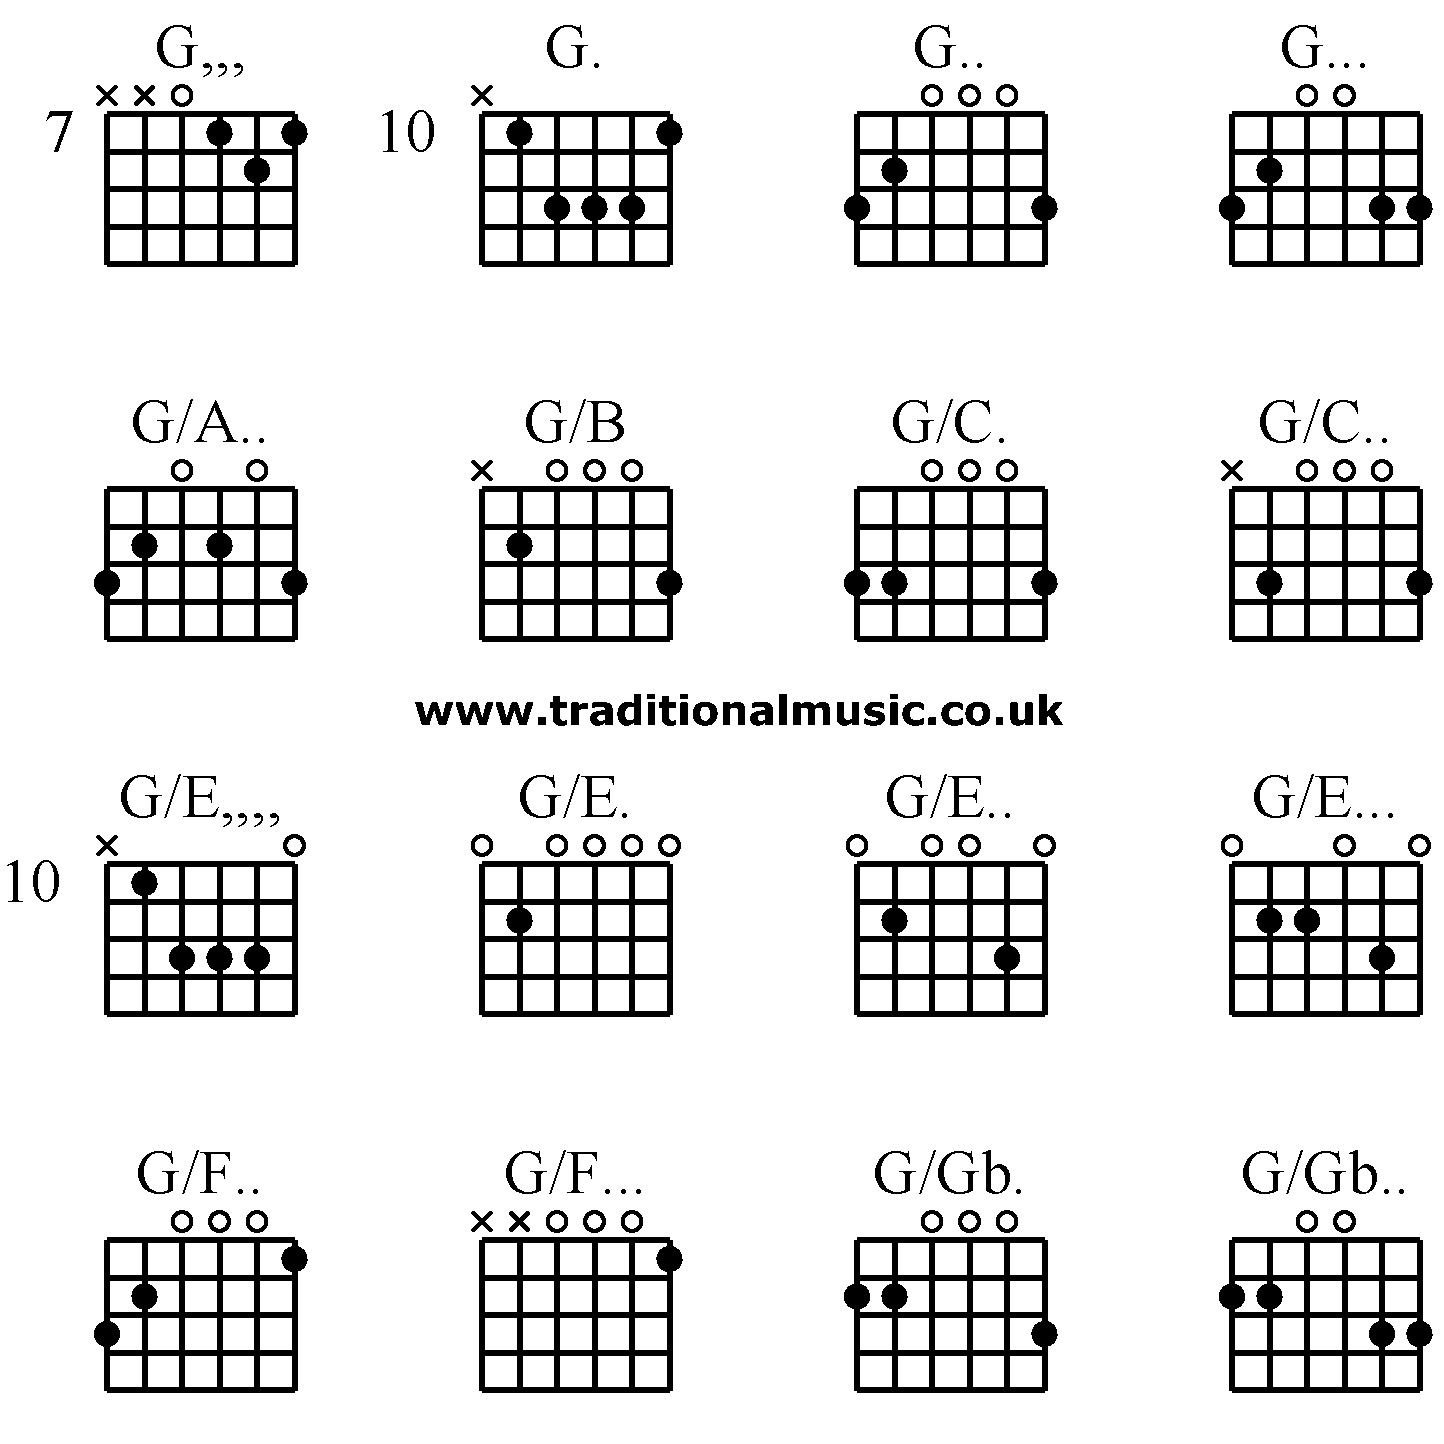 Guitar Chords Advanced G G G G Ga Gb Gc Gc Ge Ge G